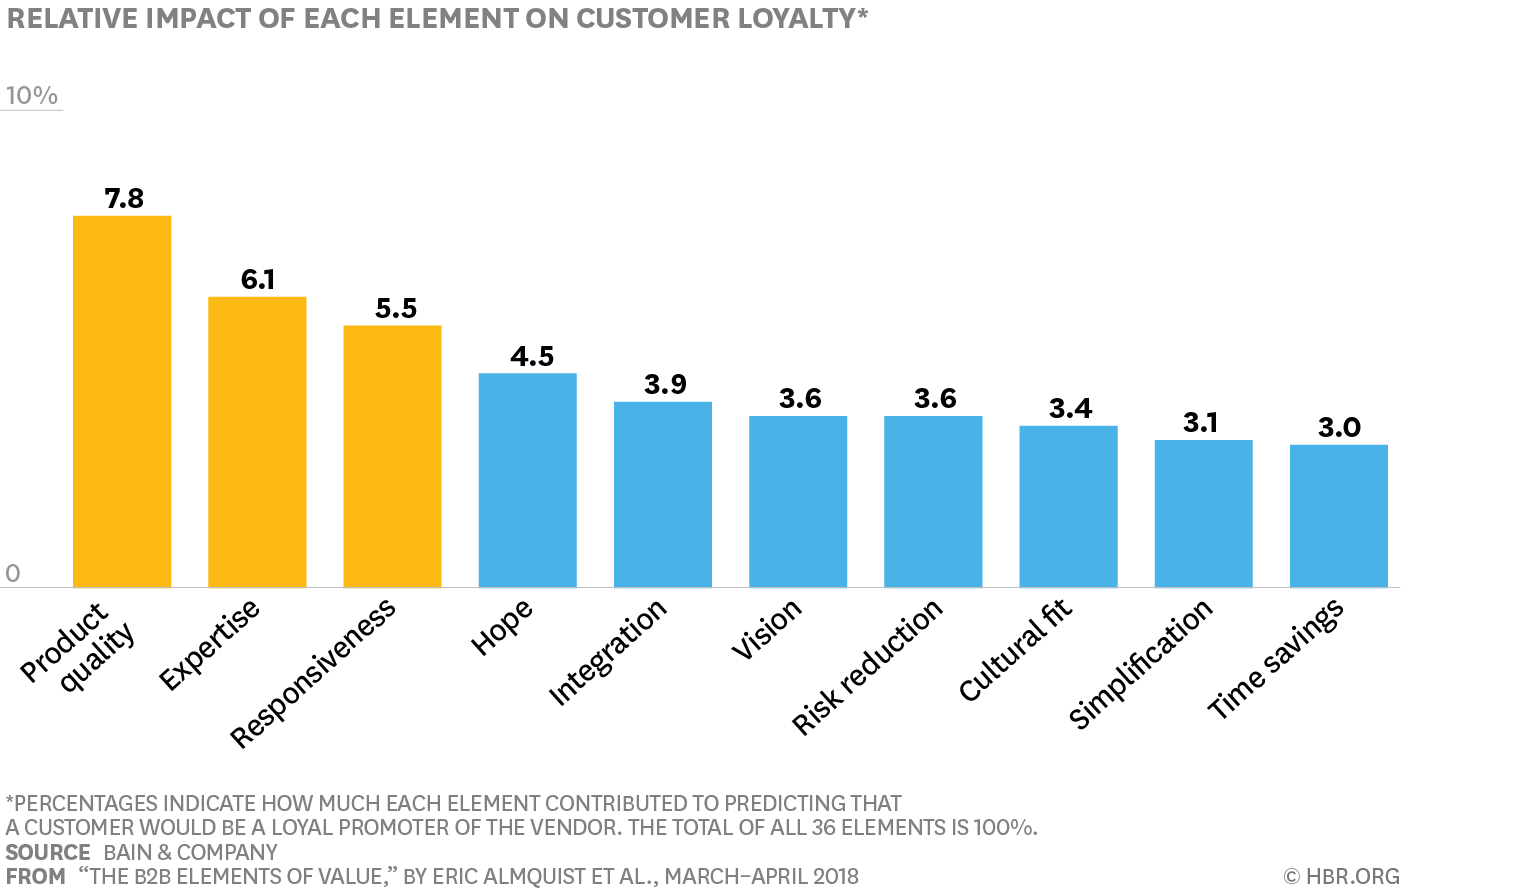 Bar graph showing elements' impacts on customer loyalty